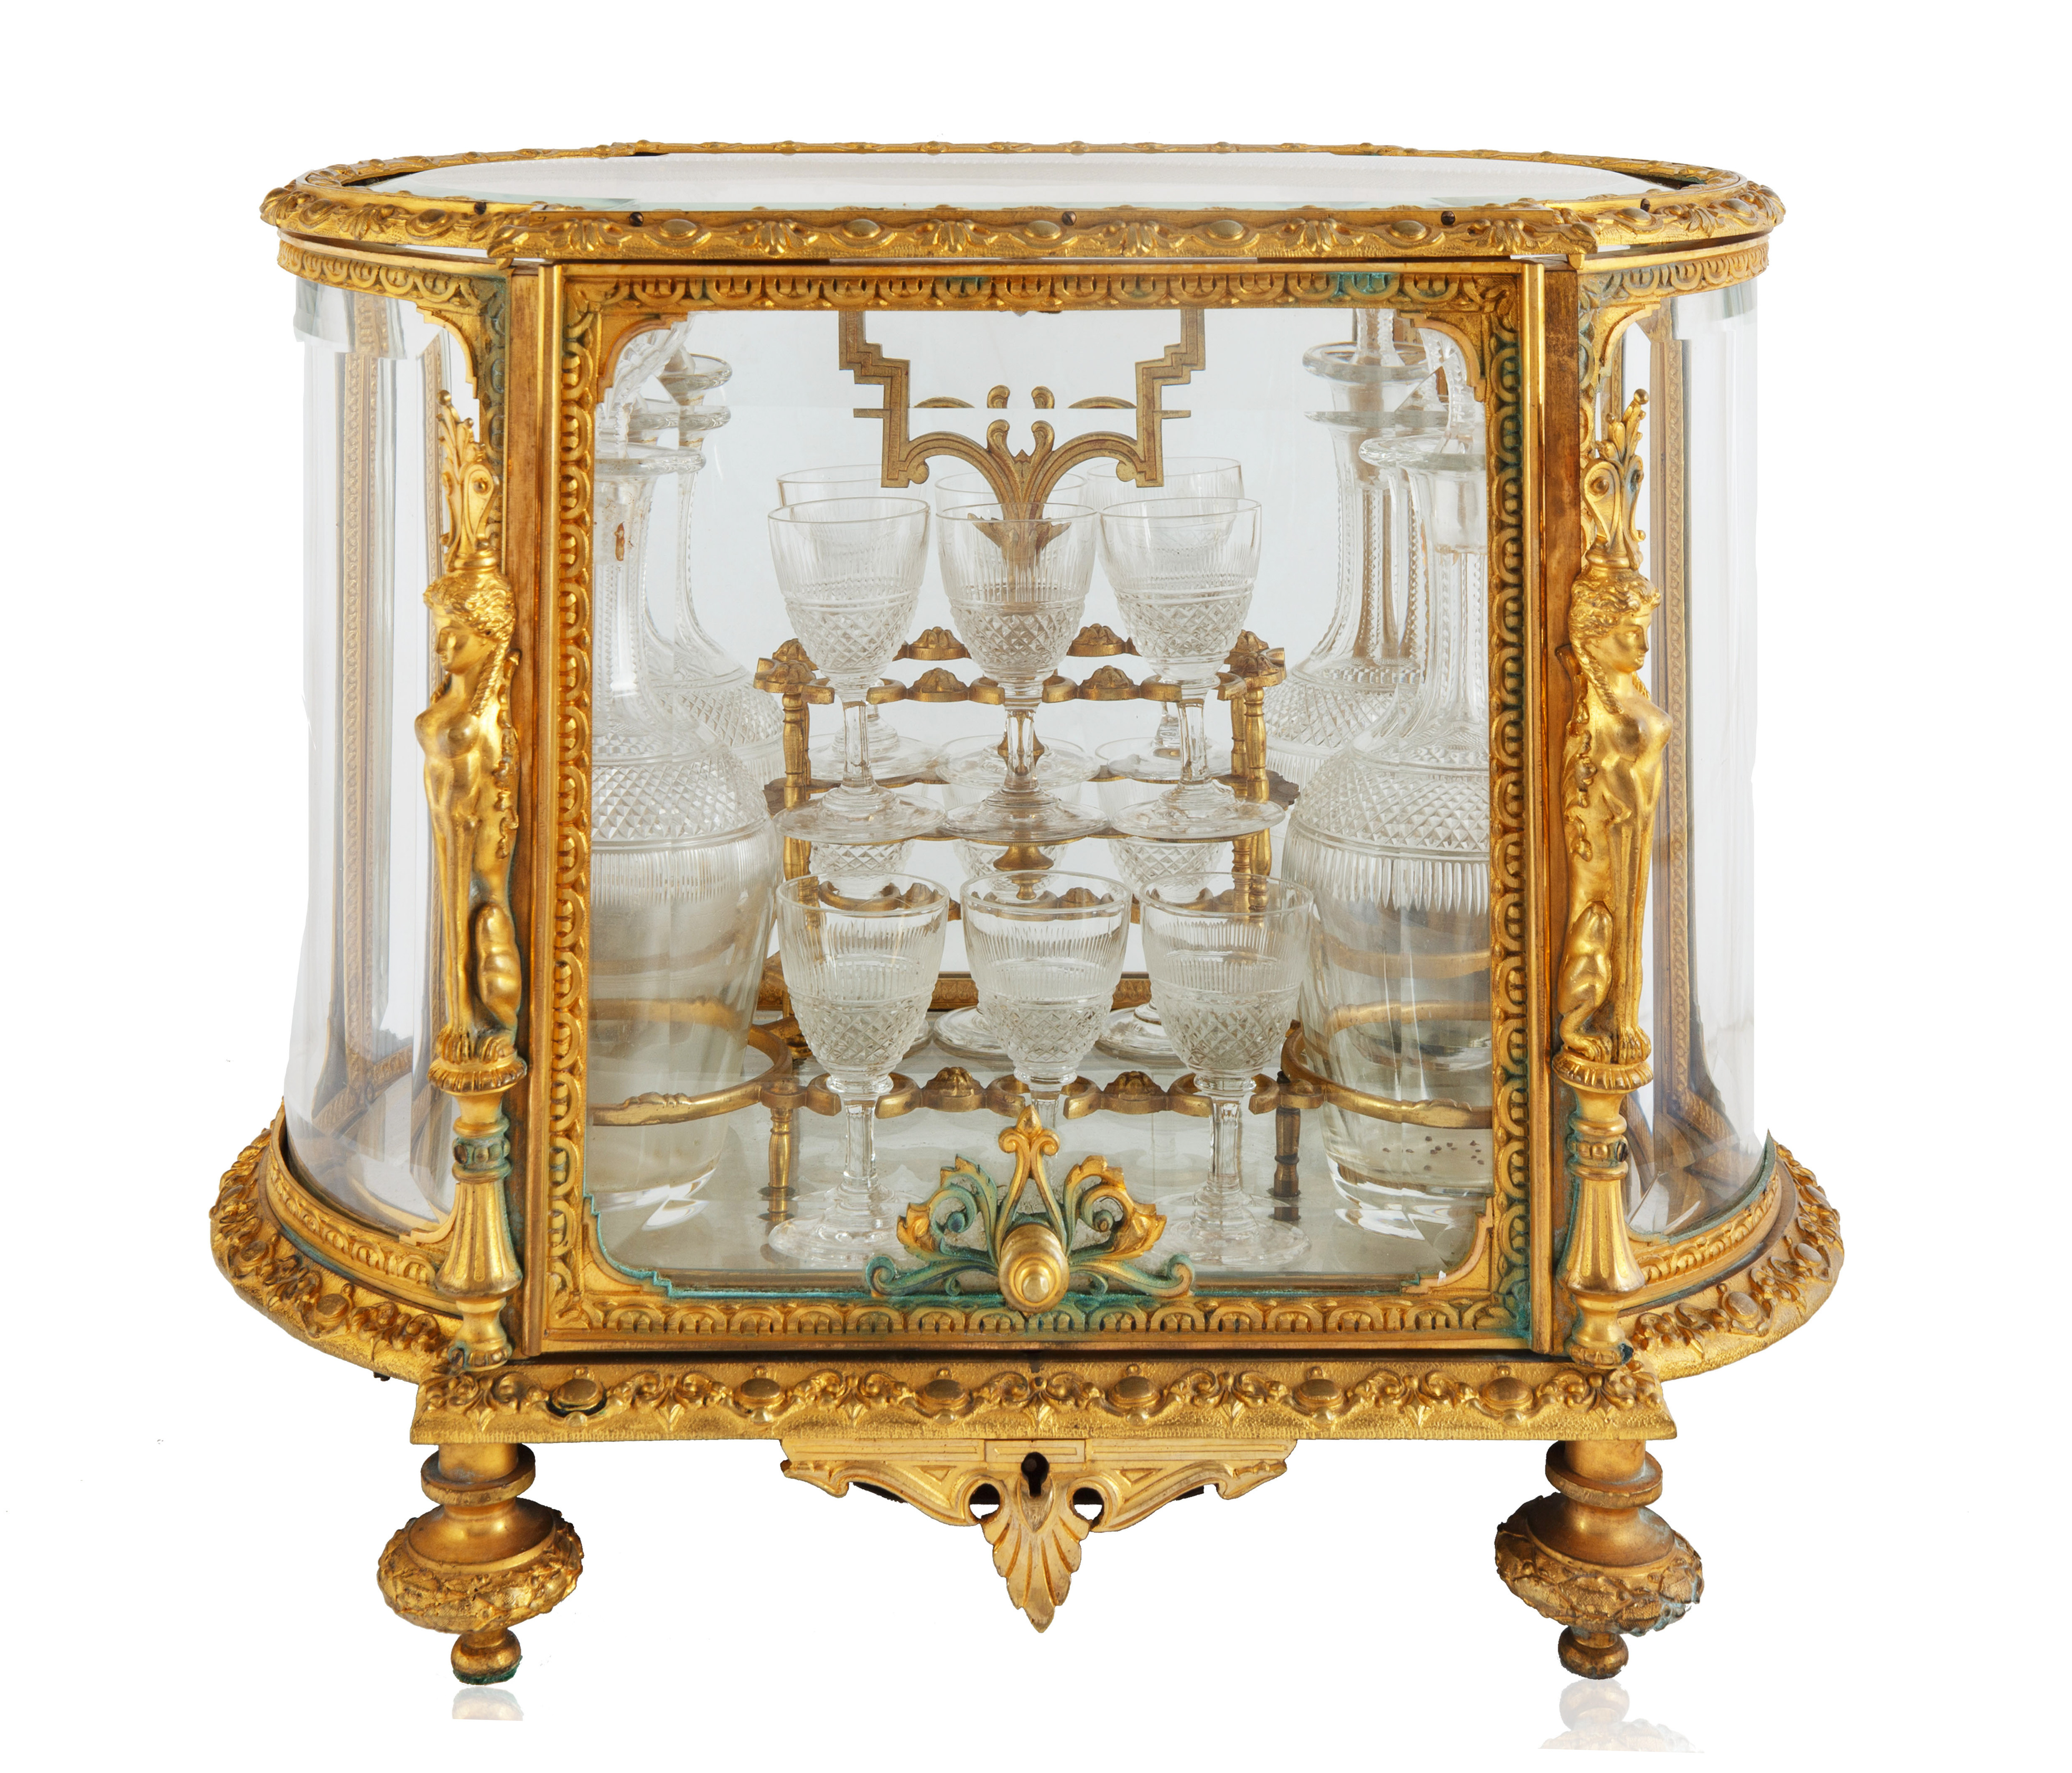 LATE 19TH-EARLY 20TH CENTURY FRENCH LOUIS XVI STYLE GILT BRONZE CAVE A LIQUEUR